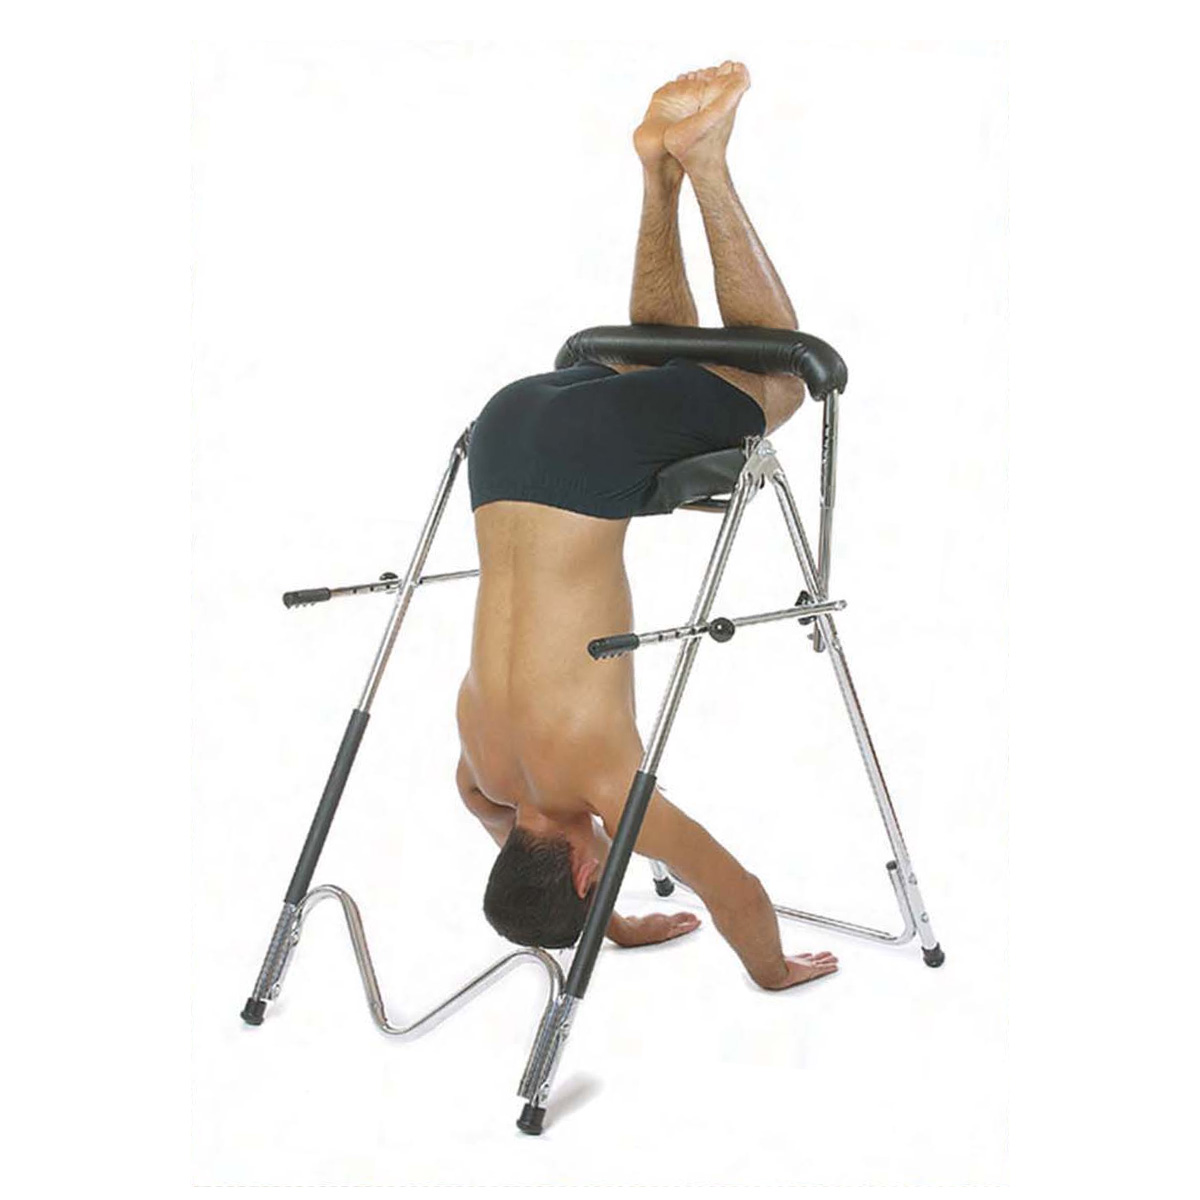 Invertrac Bent Knee Inversion